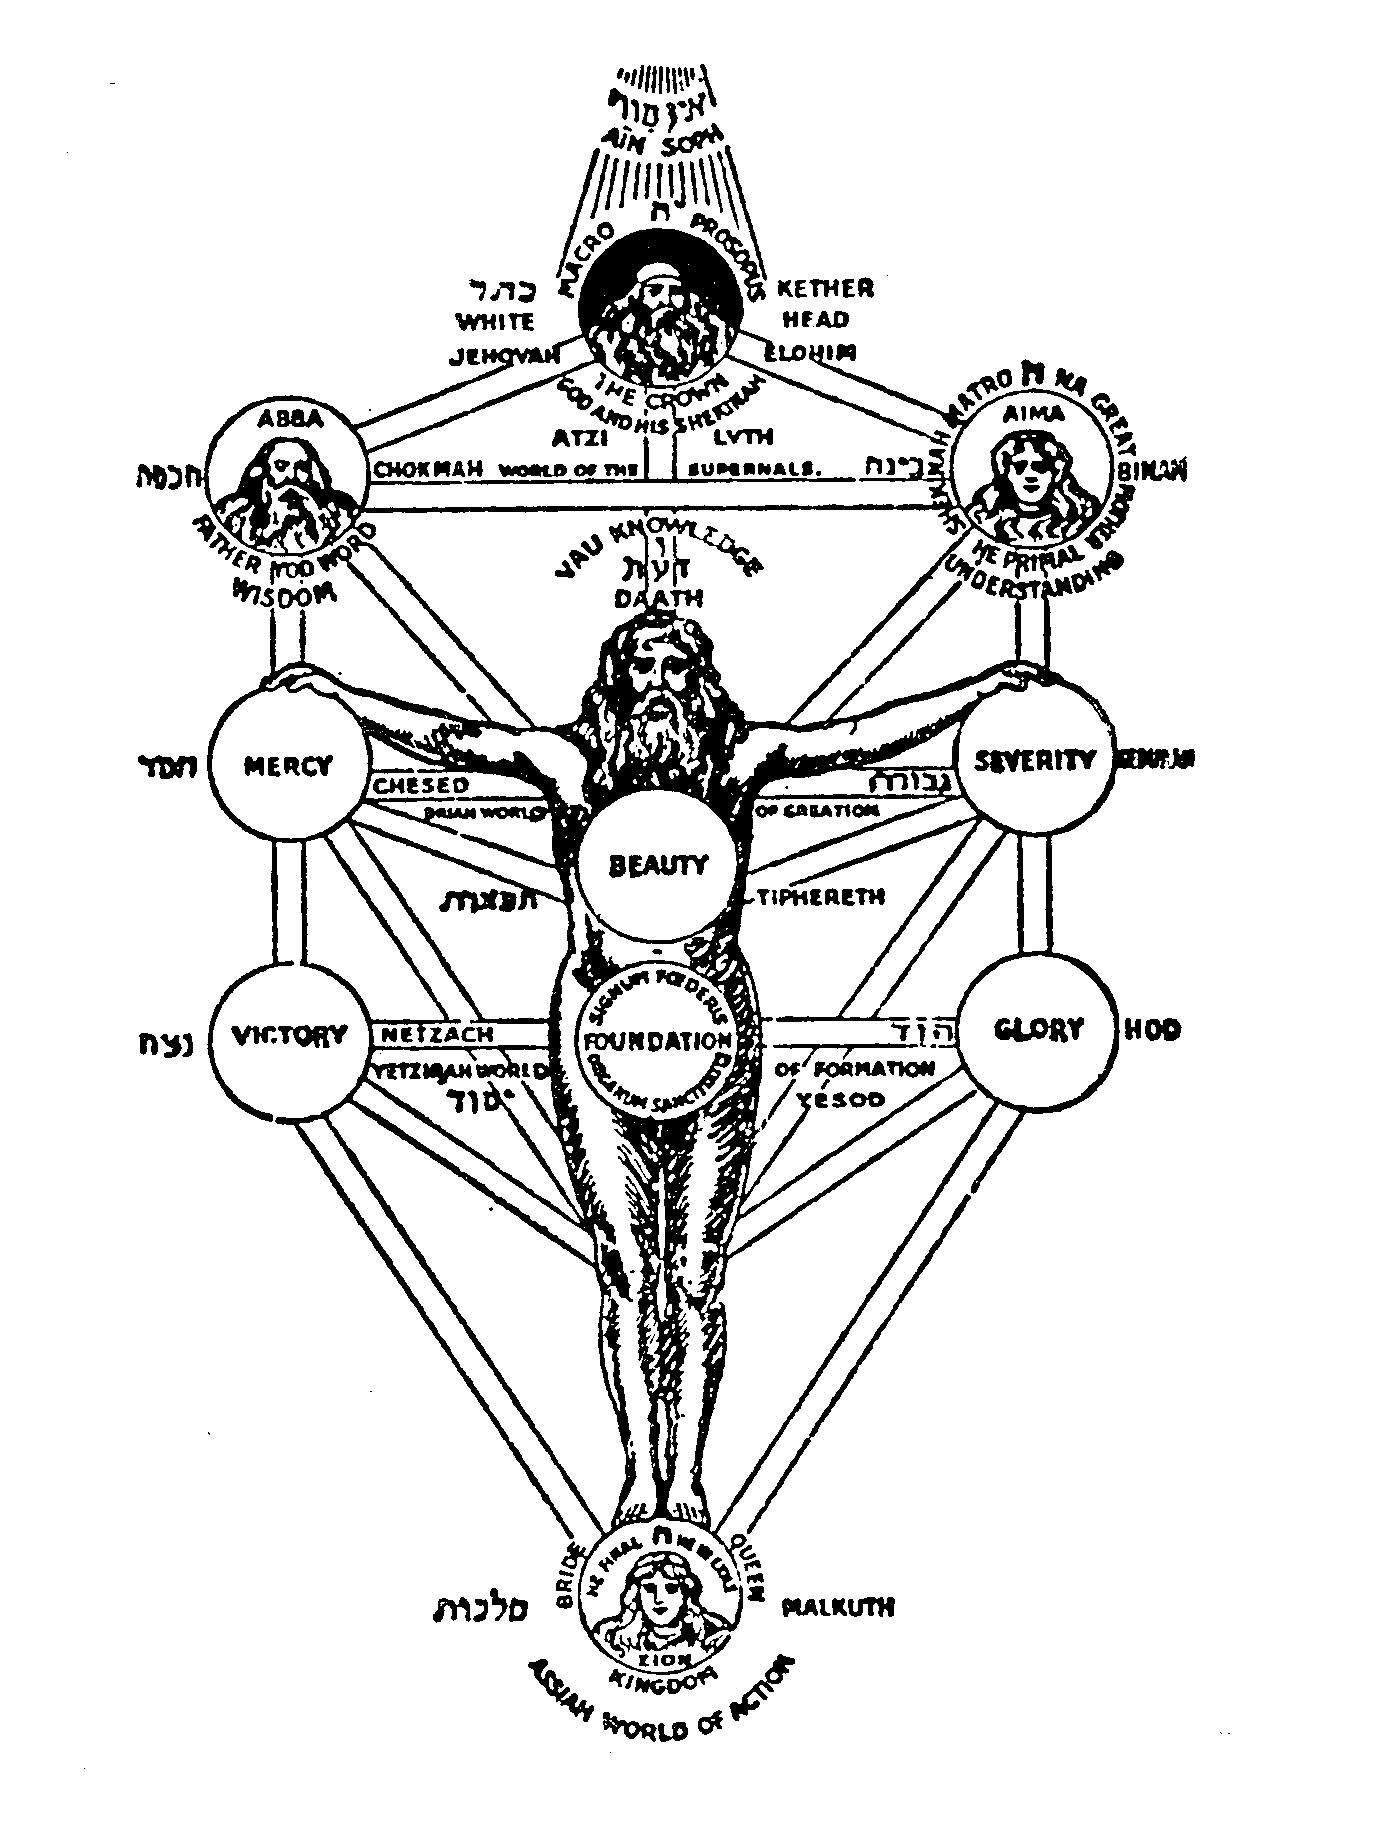 901757 10151546330459828 554458678 O Jpg 1373 1829 Tree Of Life Occult Sacred Tree Whoever has a passion for drawing, painting, music, literature. tree of life